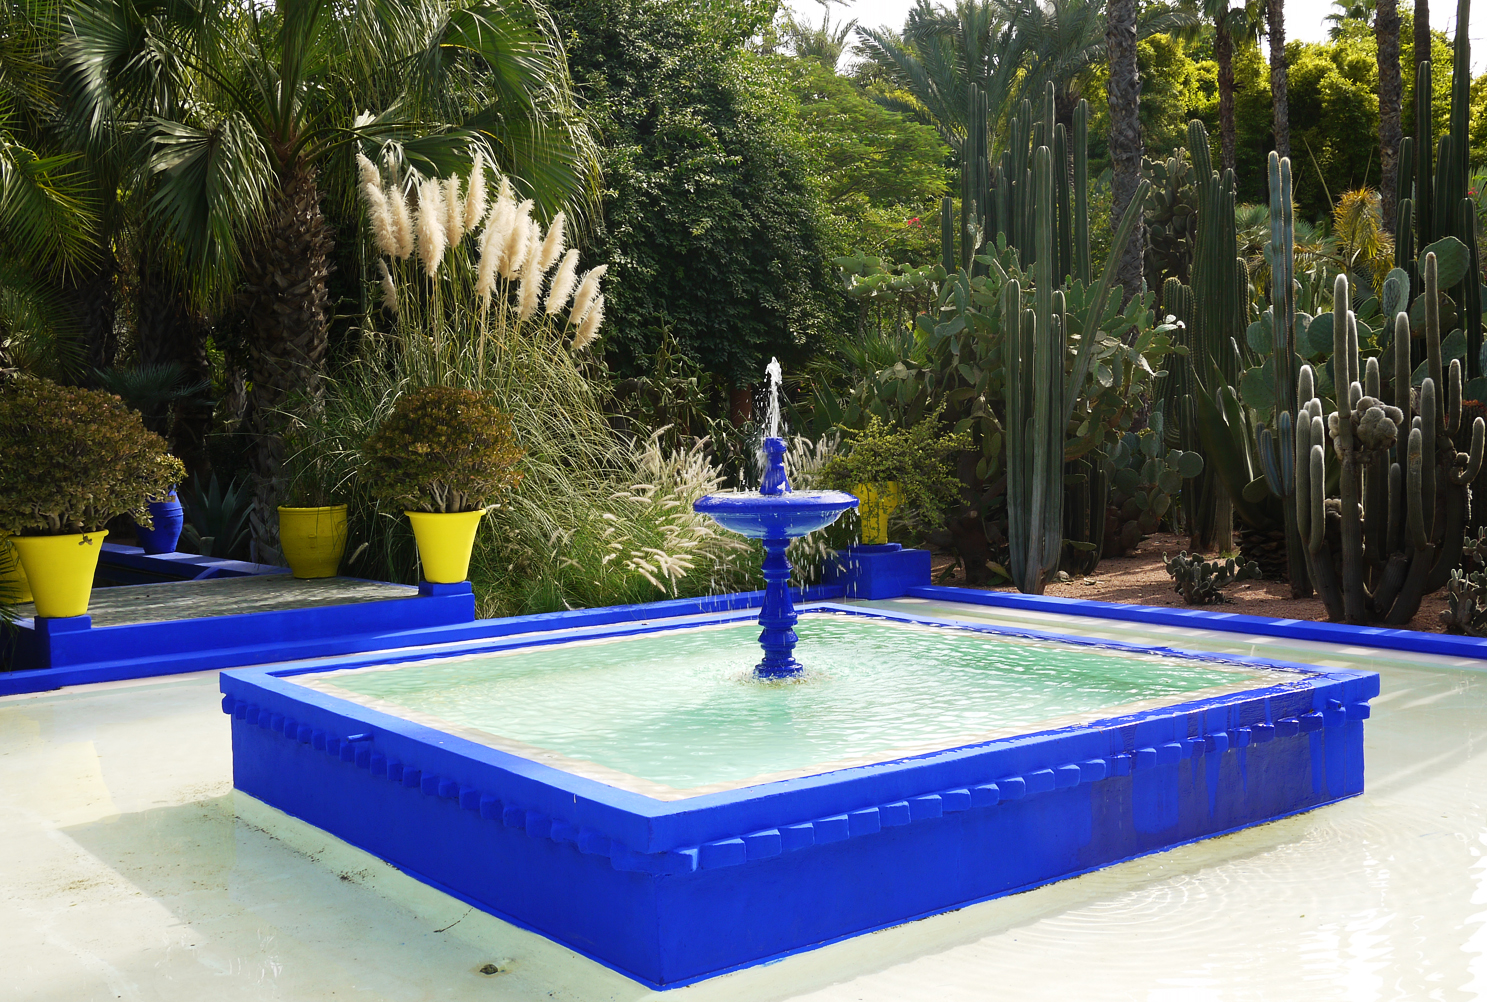 Marjorelle Villa Fountain